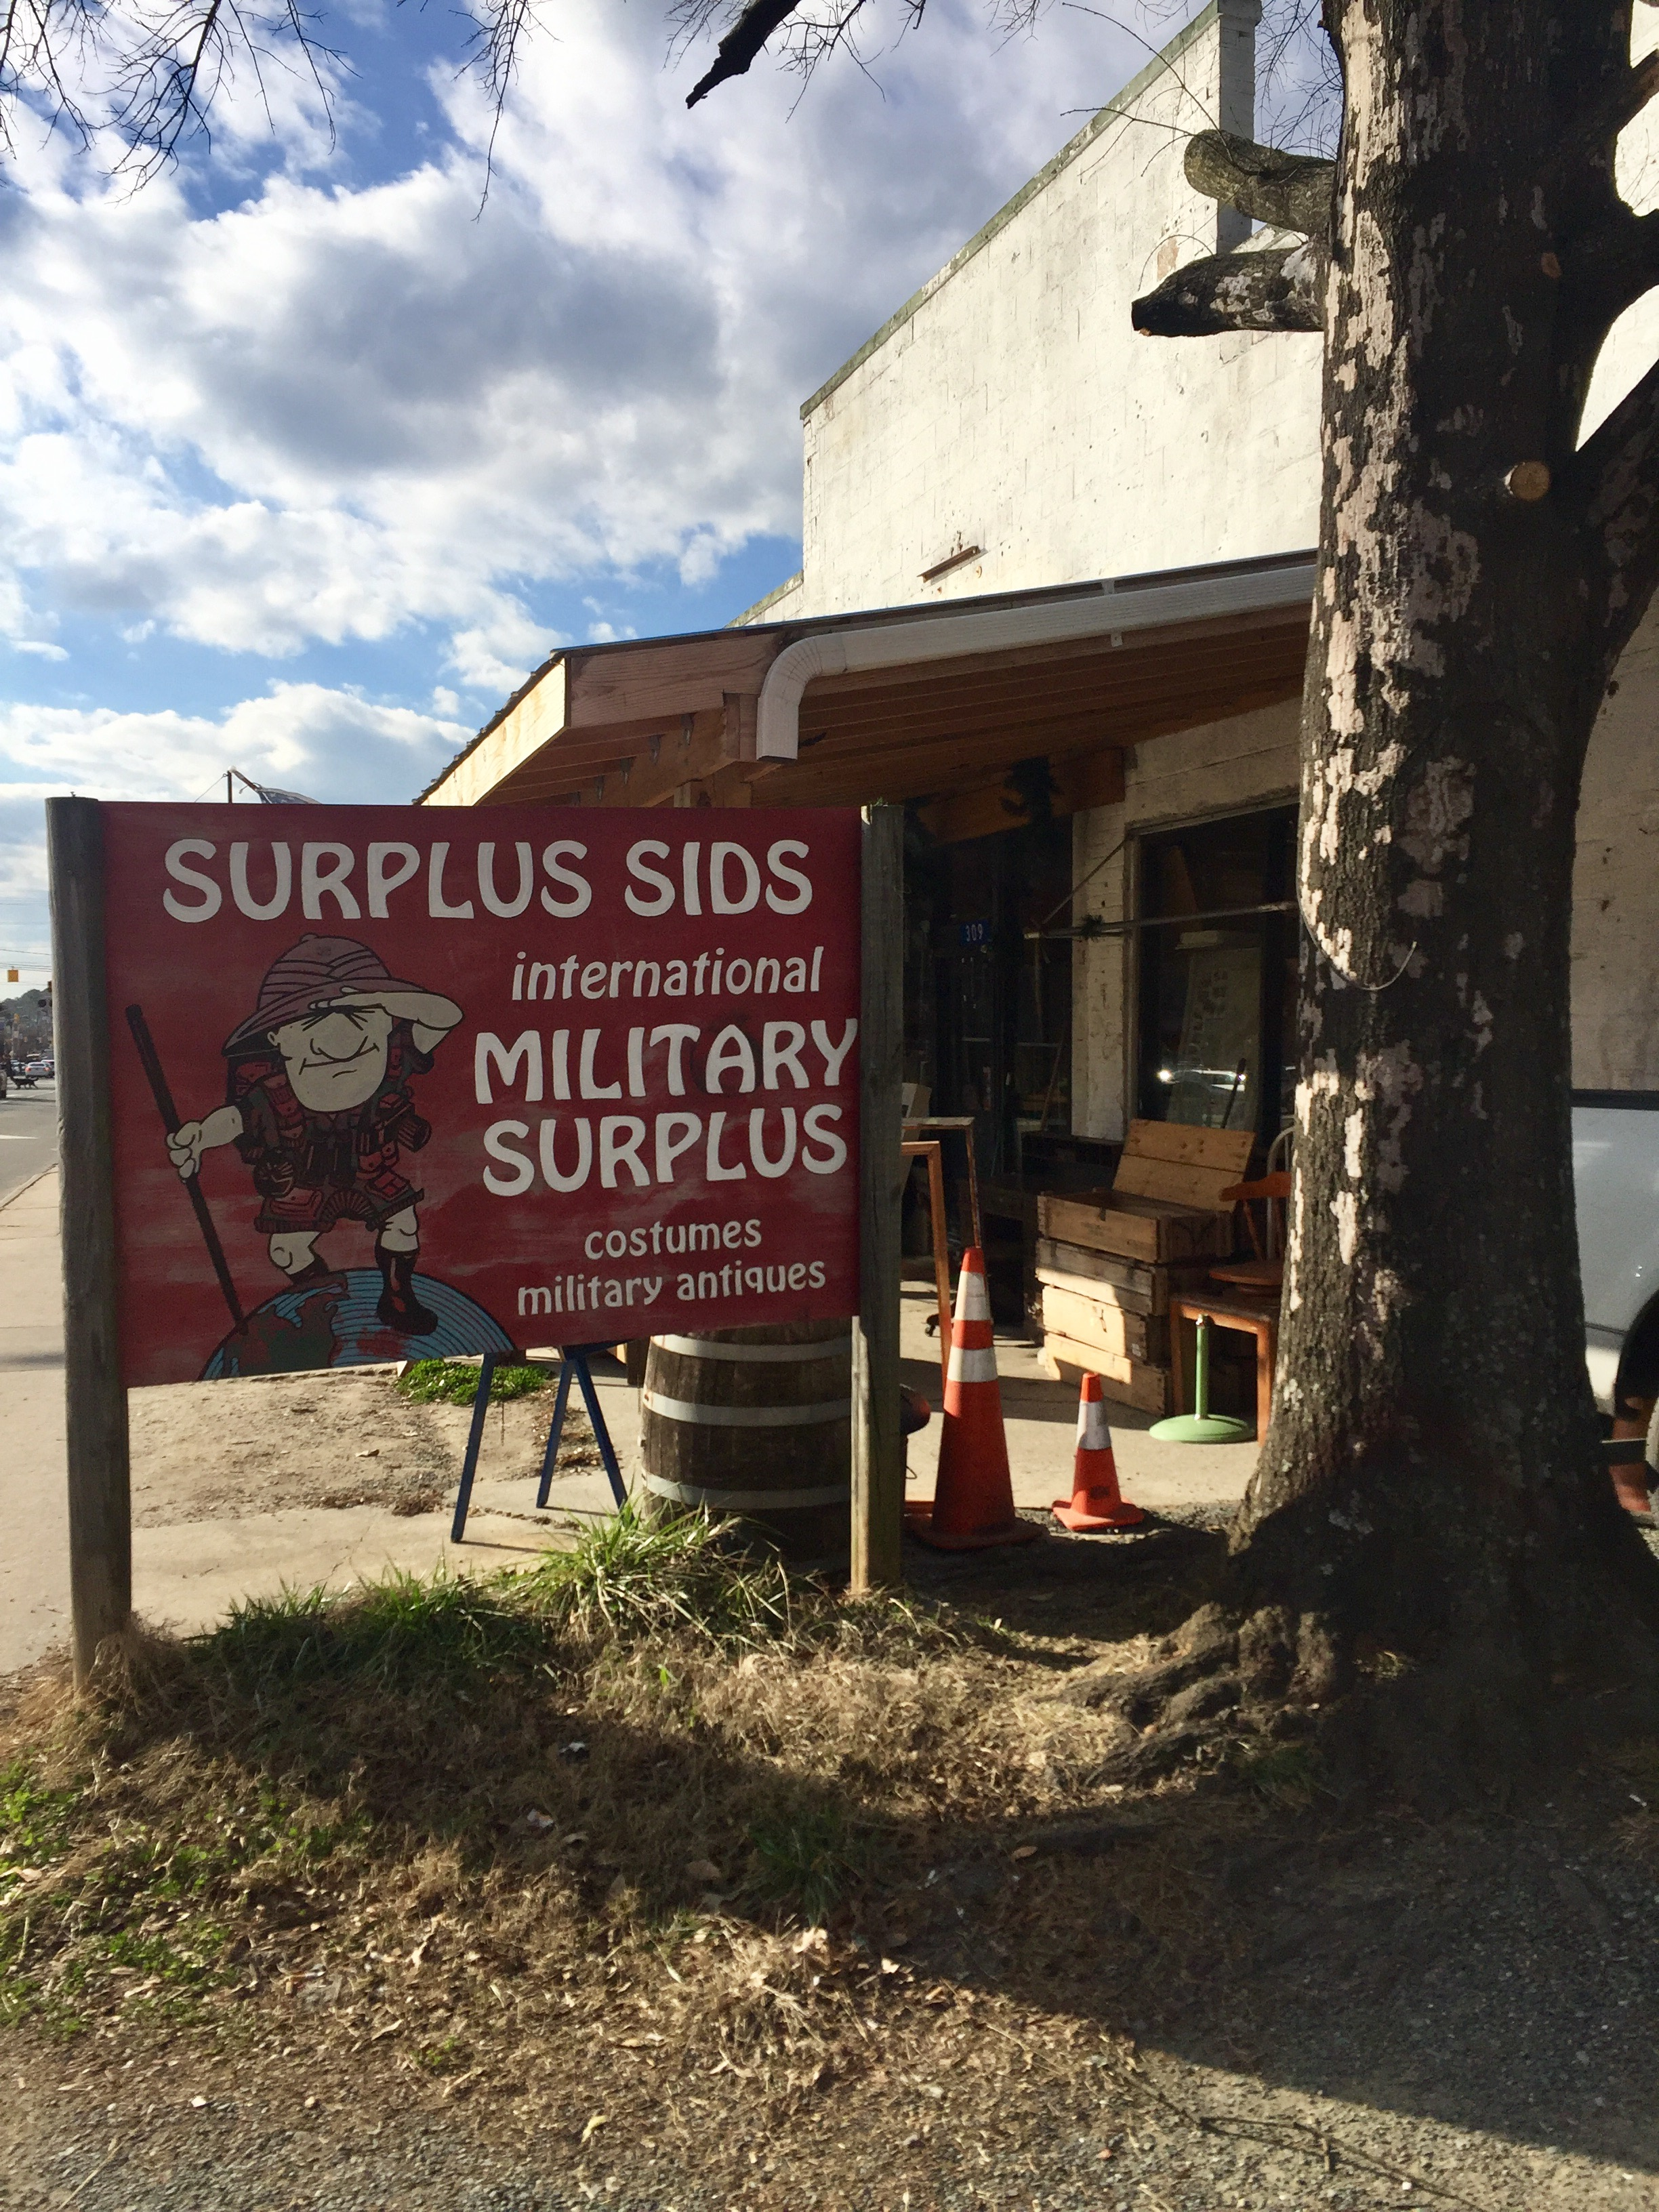 For Over 30 Years, Surplus Sids Has Been The Go To Store For Costumes,  Toys, Military Memorabilia And Odd Furniture In The Chapel Hill Carrboro  Area.